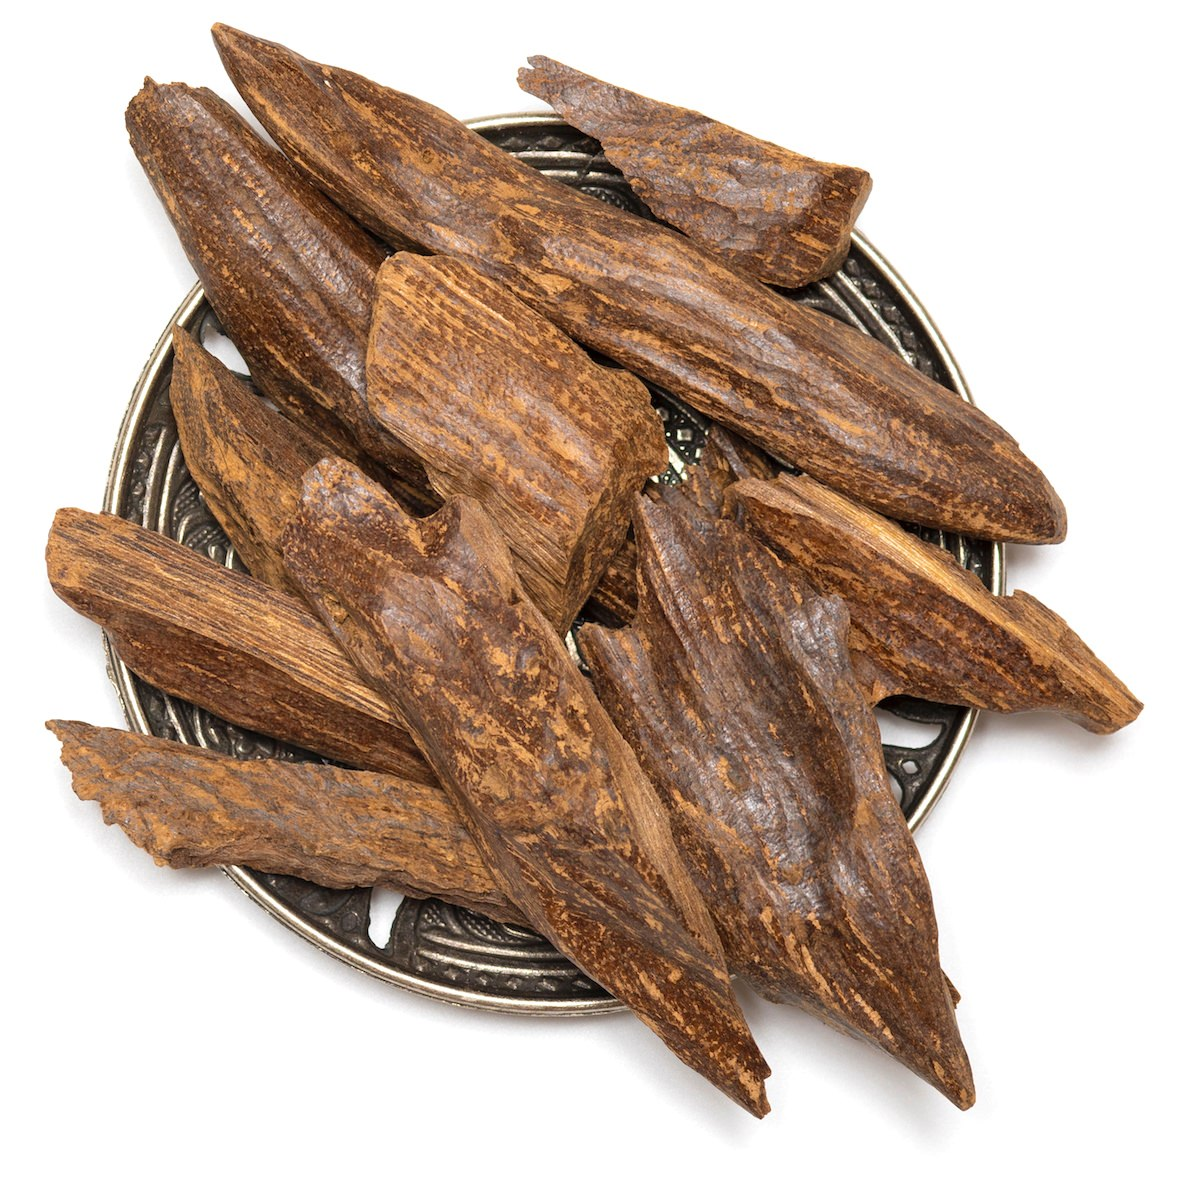 Agarwood Essential Oil   Organic Indian Agarwood Oil - Nature In Bottle